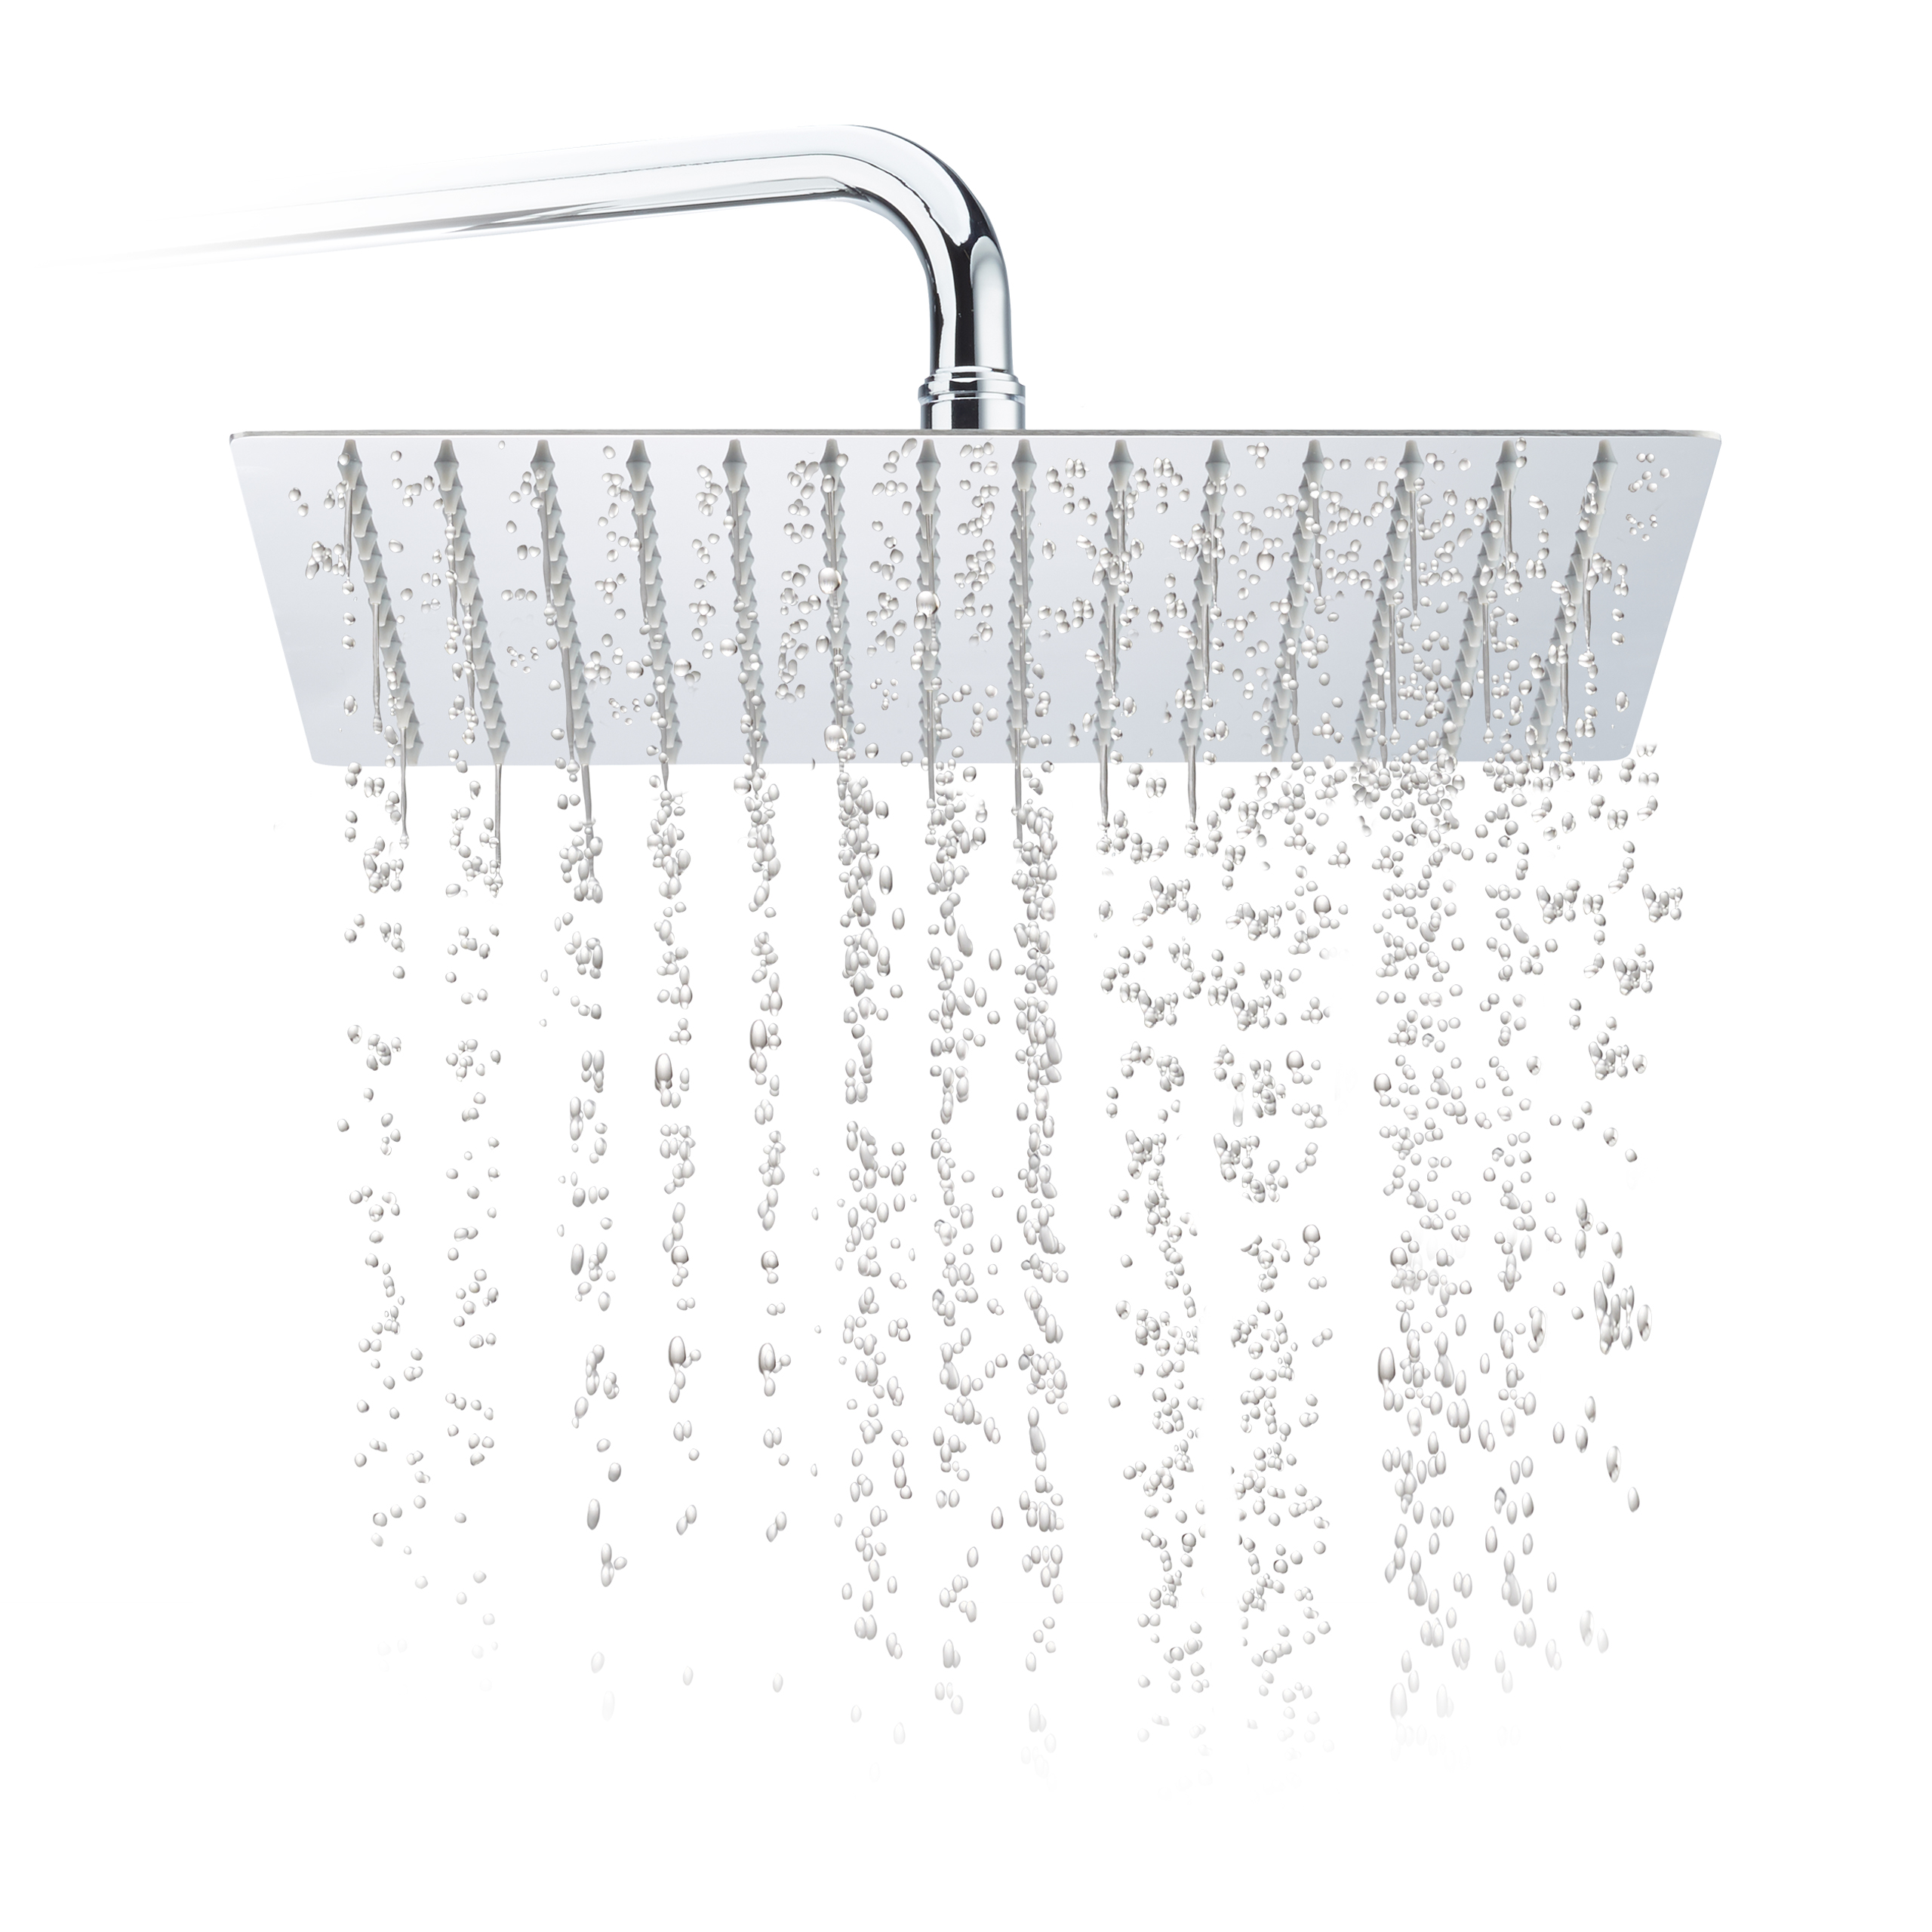 Rainfall-Shower-Head-Square-Stainless-Steel-Rain-Effect-200-300-mm-Silver